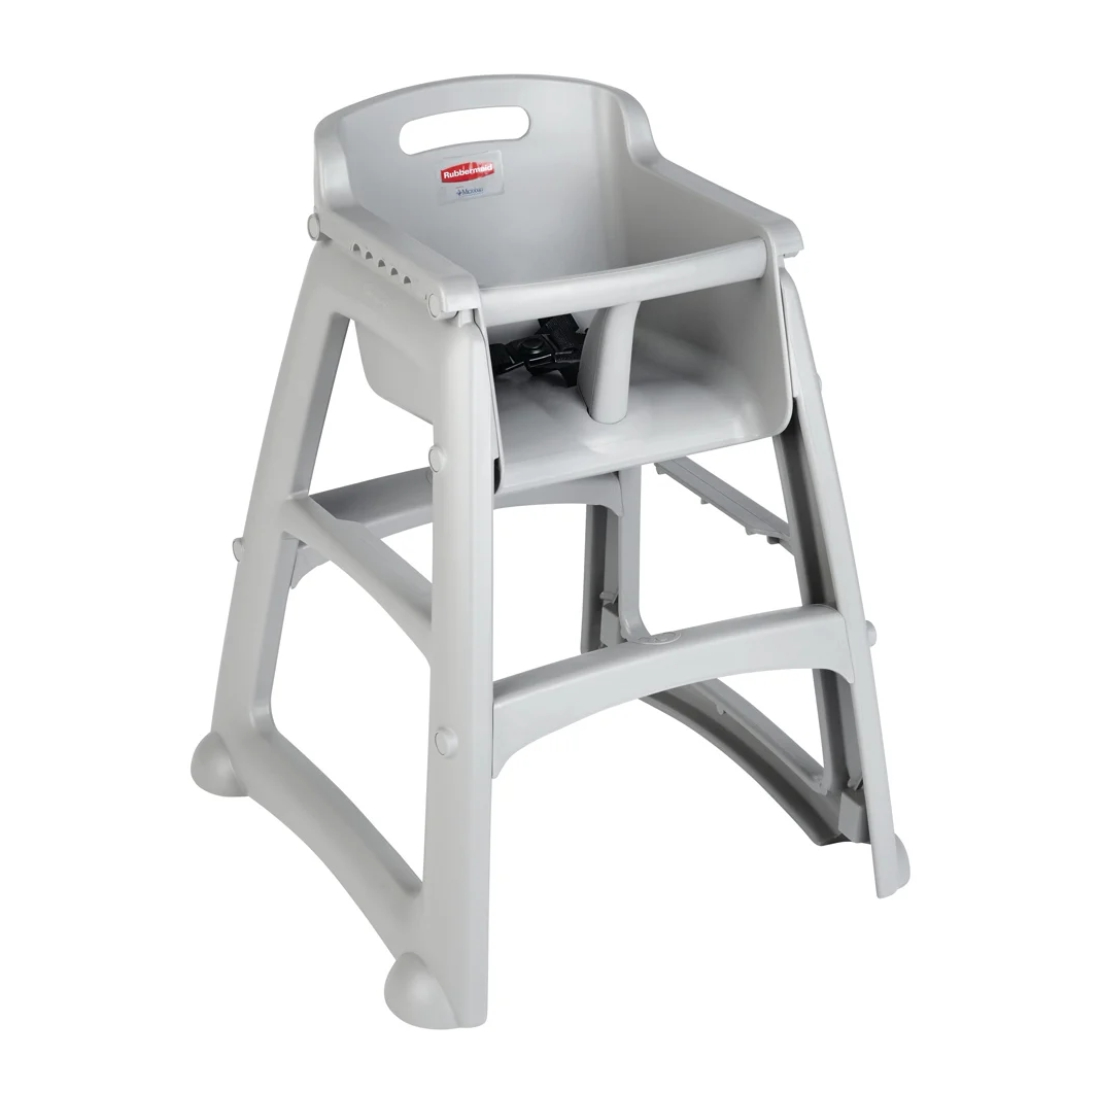 Rubbermaid High Chair - Platinum